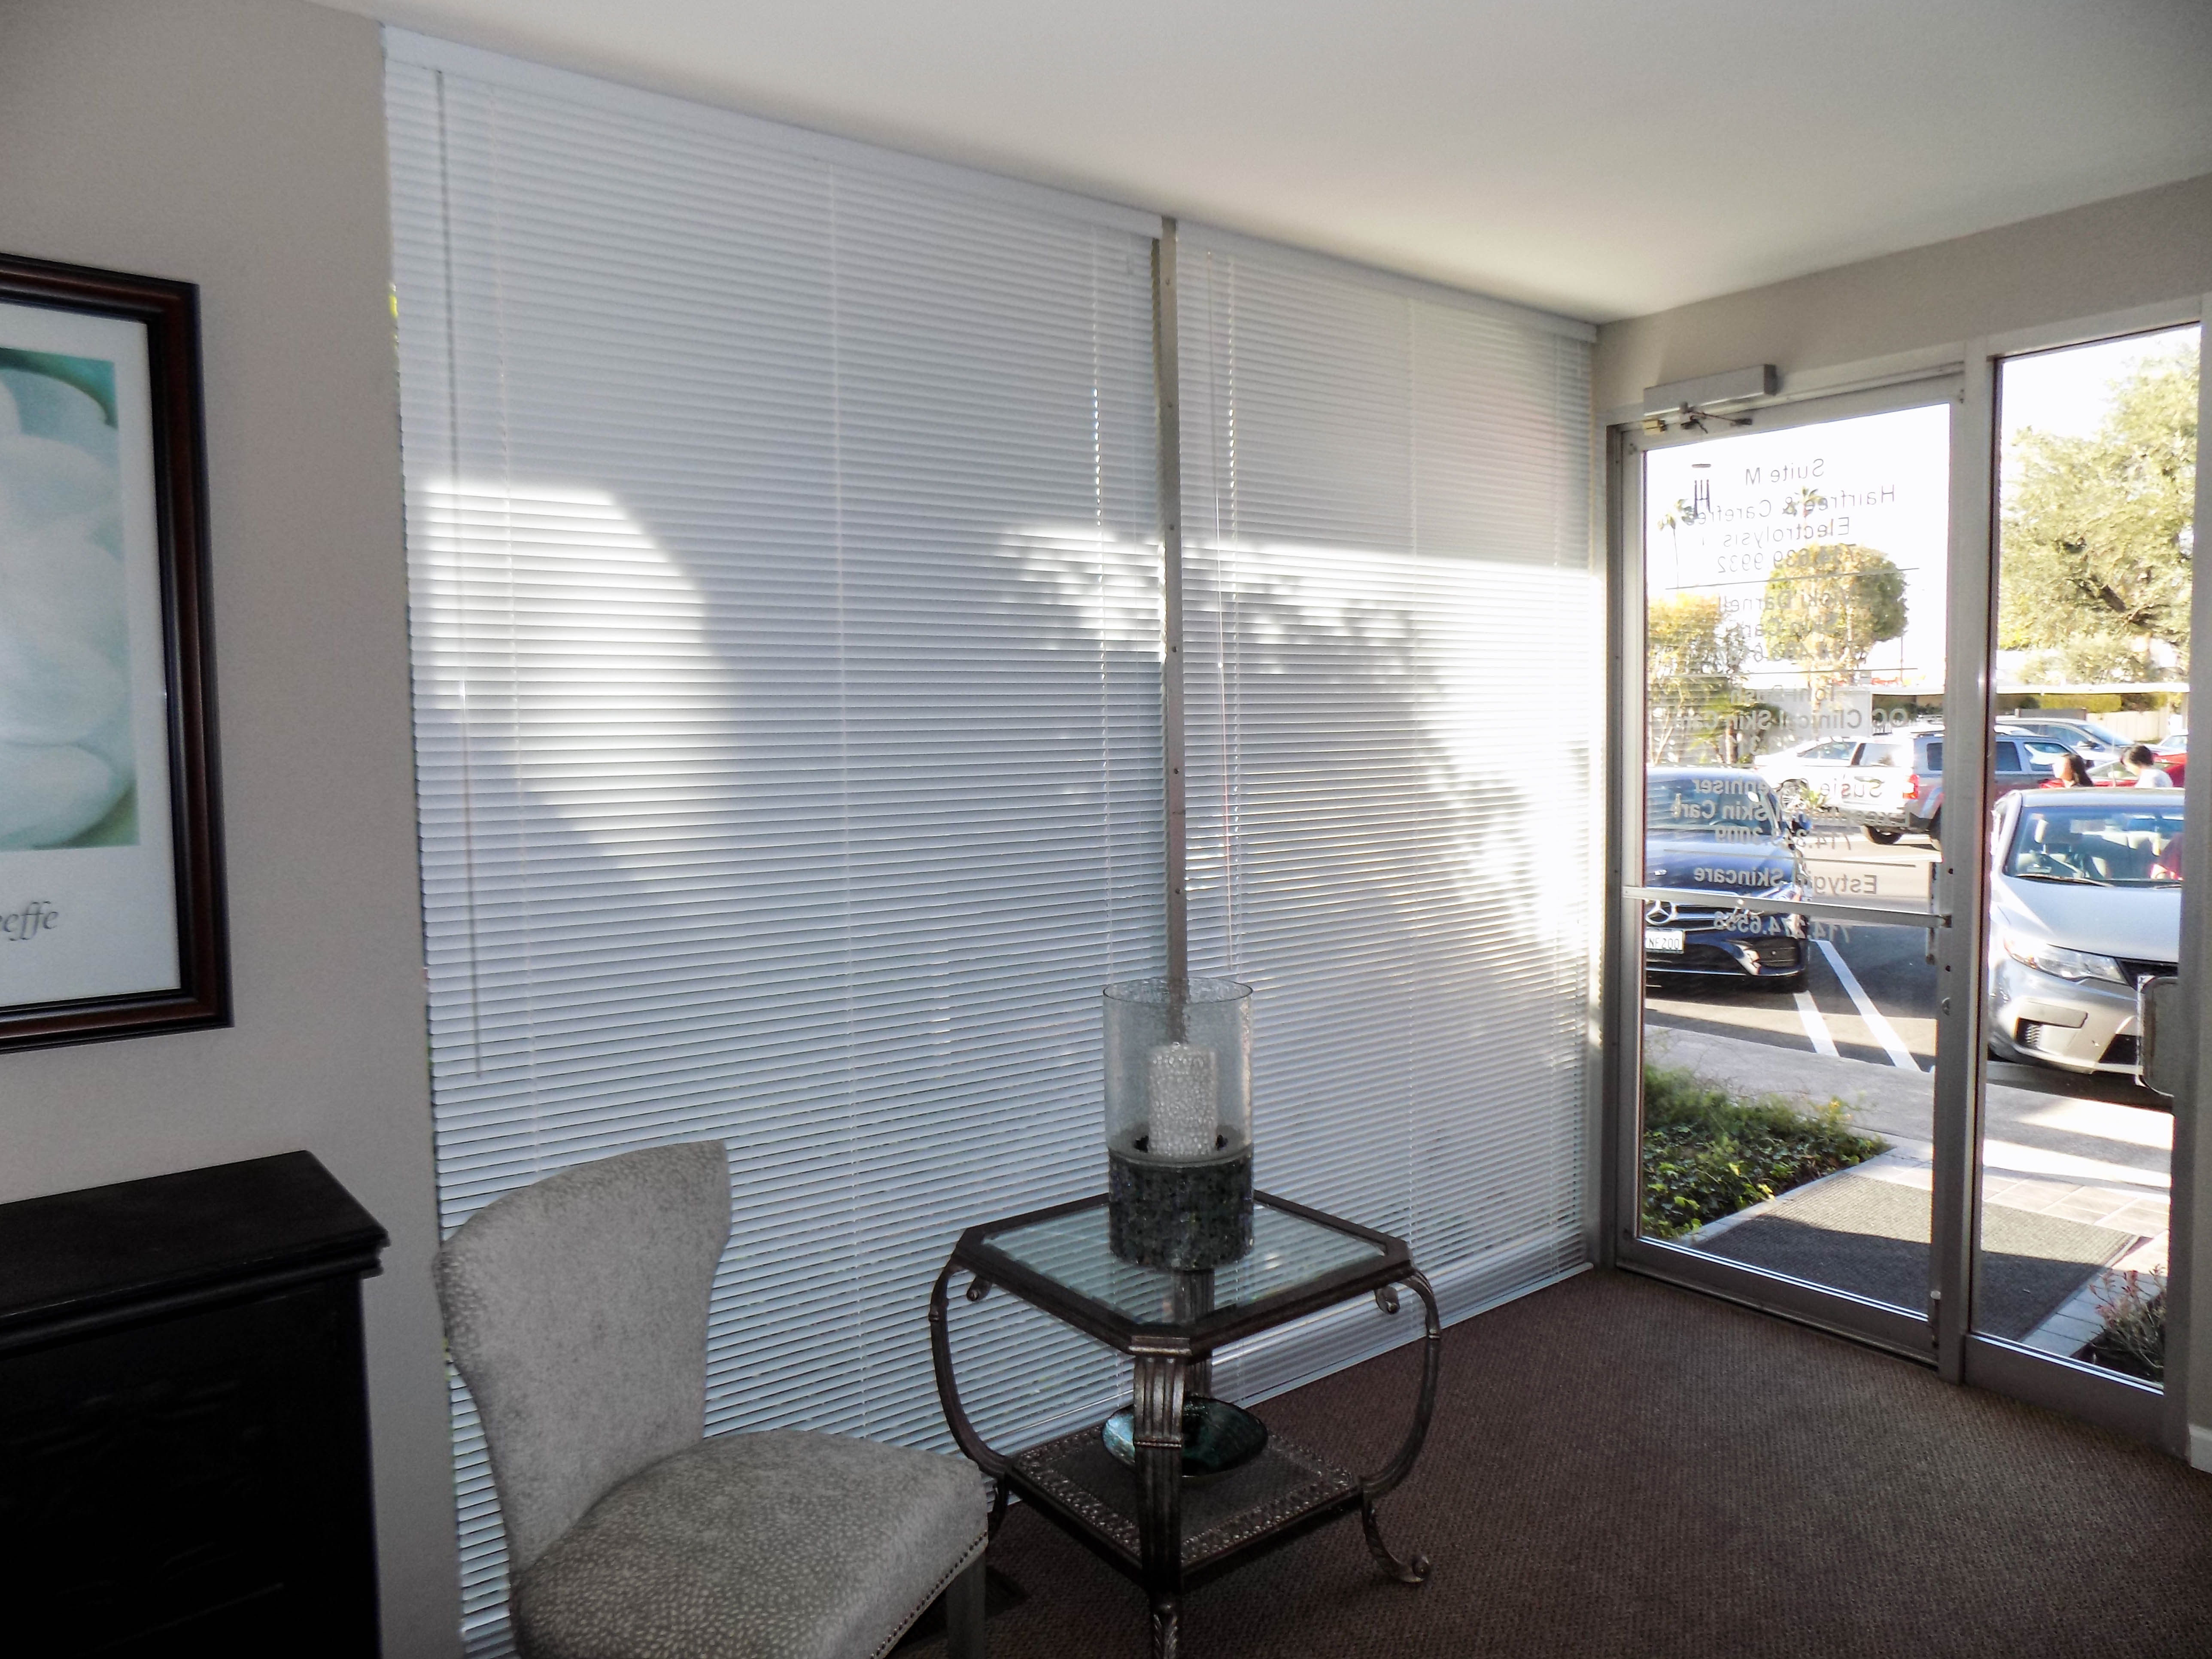 Commercial aluminum blinds